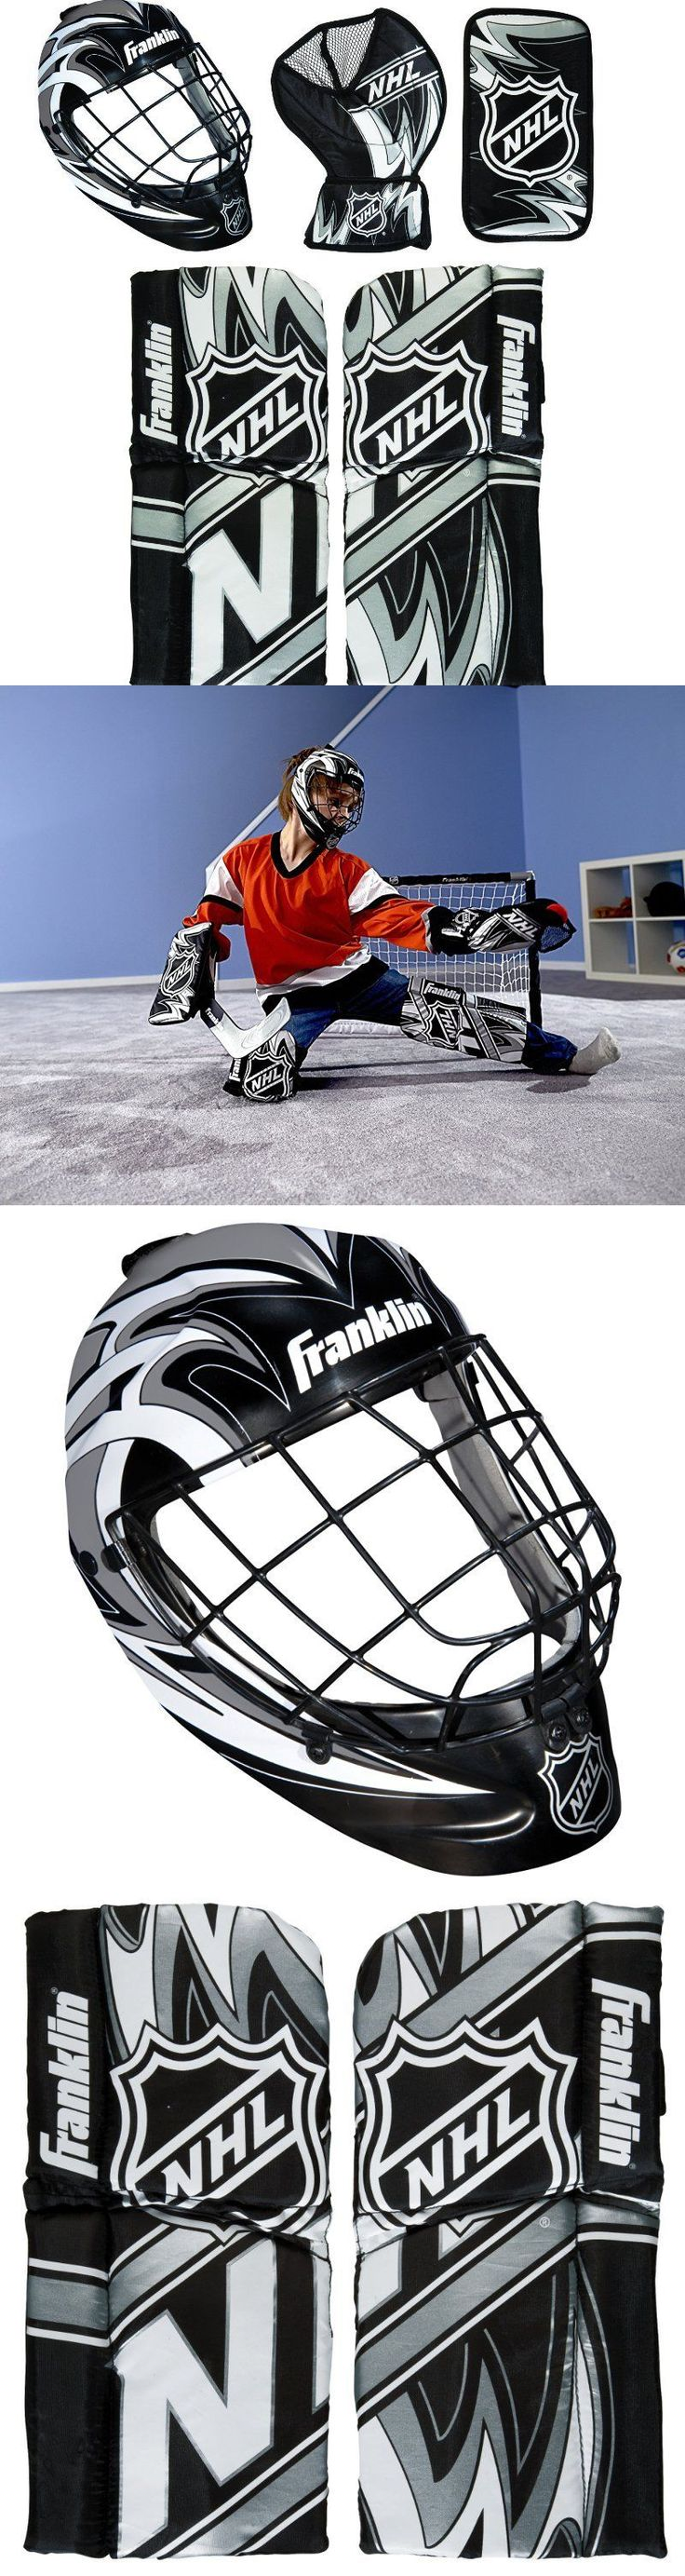 Other Hockey Goalie Equipment 79765: Franklin Sports Nhl Mini Hockey Goalie Equipment With Mask Set BUY IT NOW ONLY: $42.18